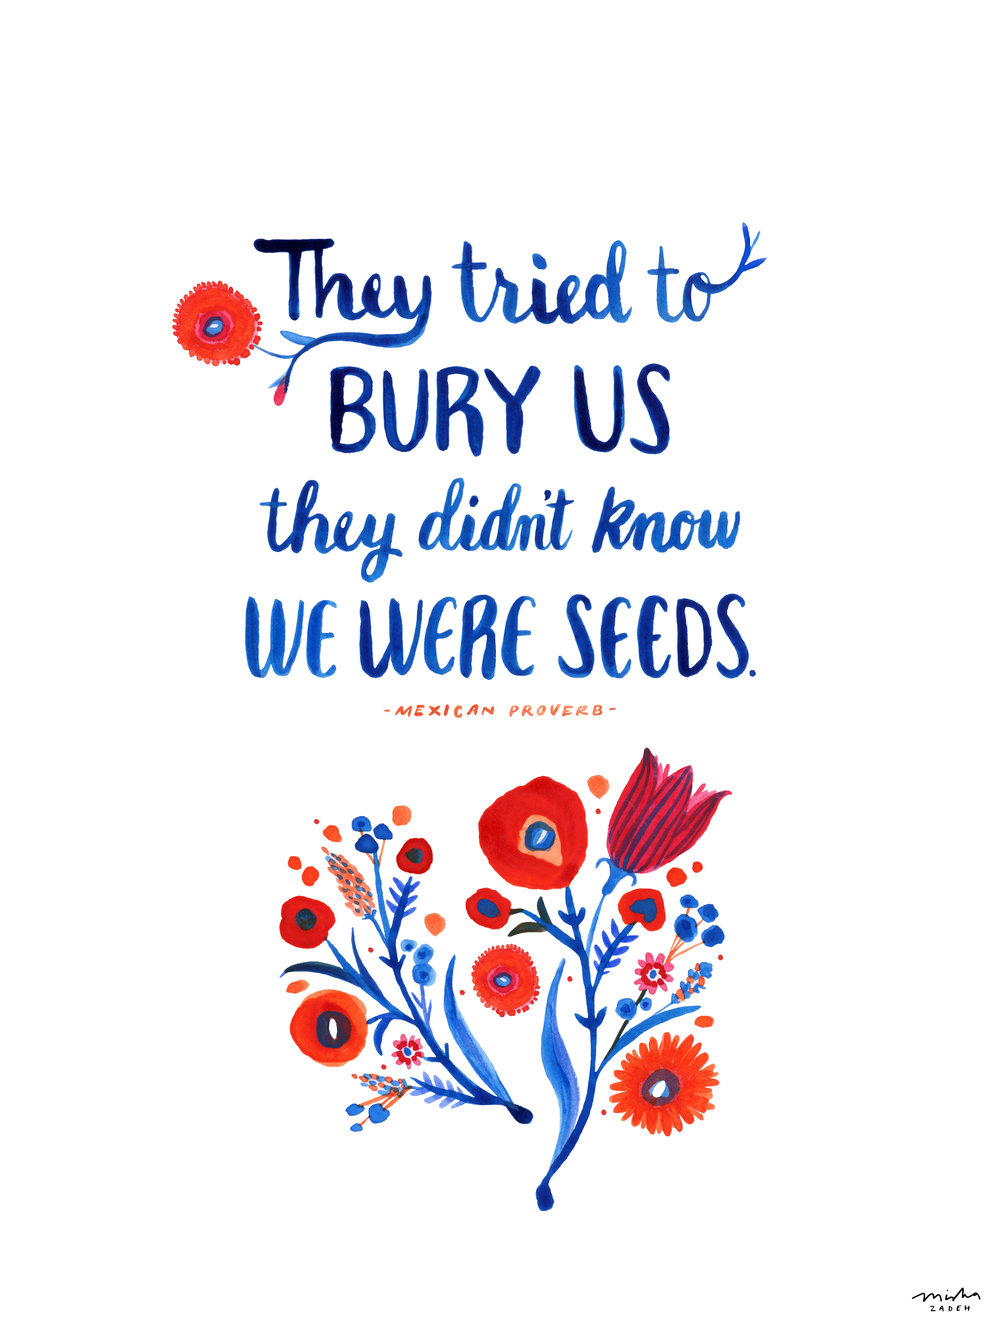 """Bury Us"" by Misha Zadeh, comissioned by the Amplifier Project for the Women's March, 2017"